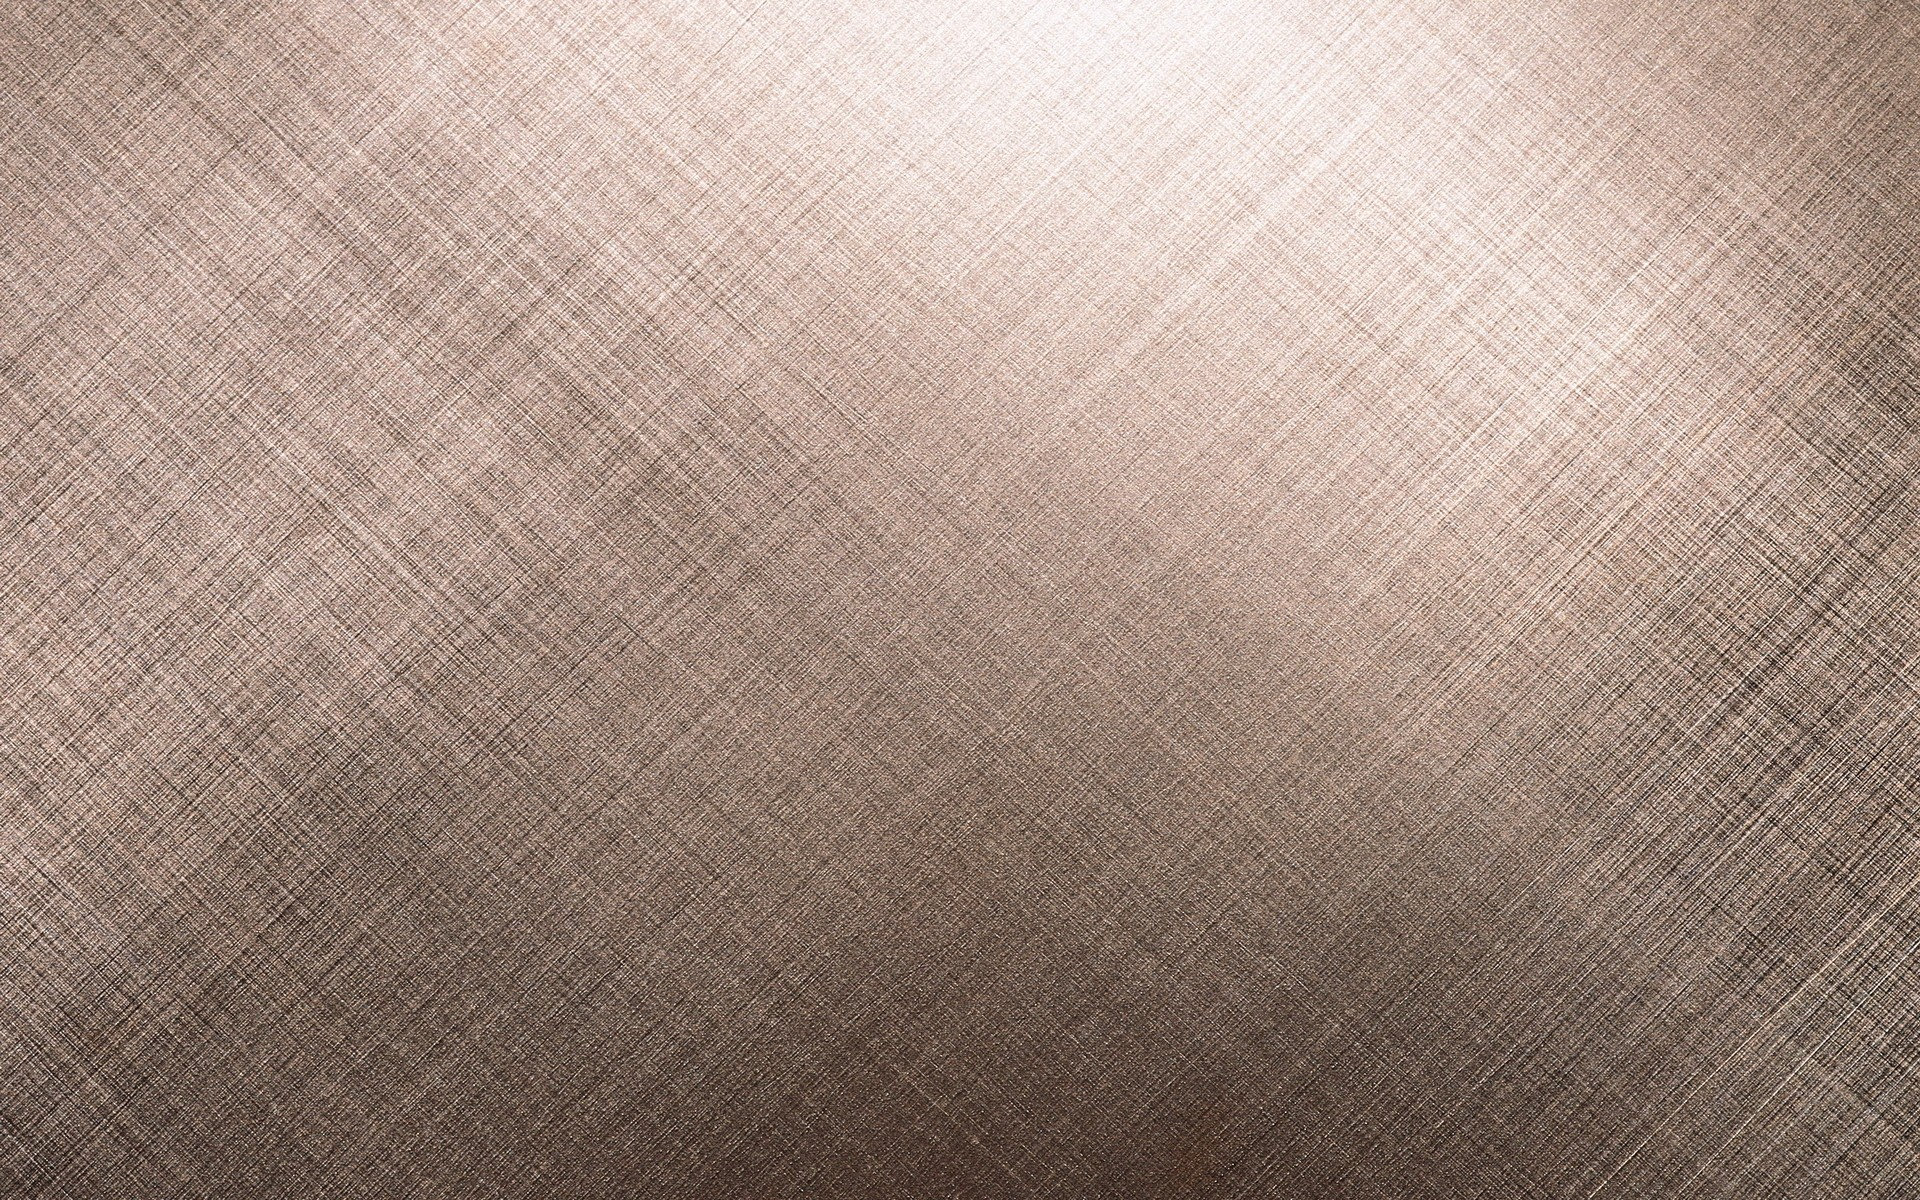 1920x1200 Grunge Fabric Texture desktop PC and Mac wallpaper: wallpaperstock.net/grunge-fabric-texture_wallpapers_34743_1920x1200...